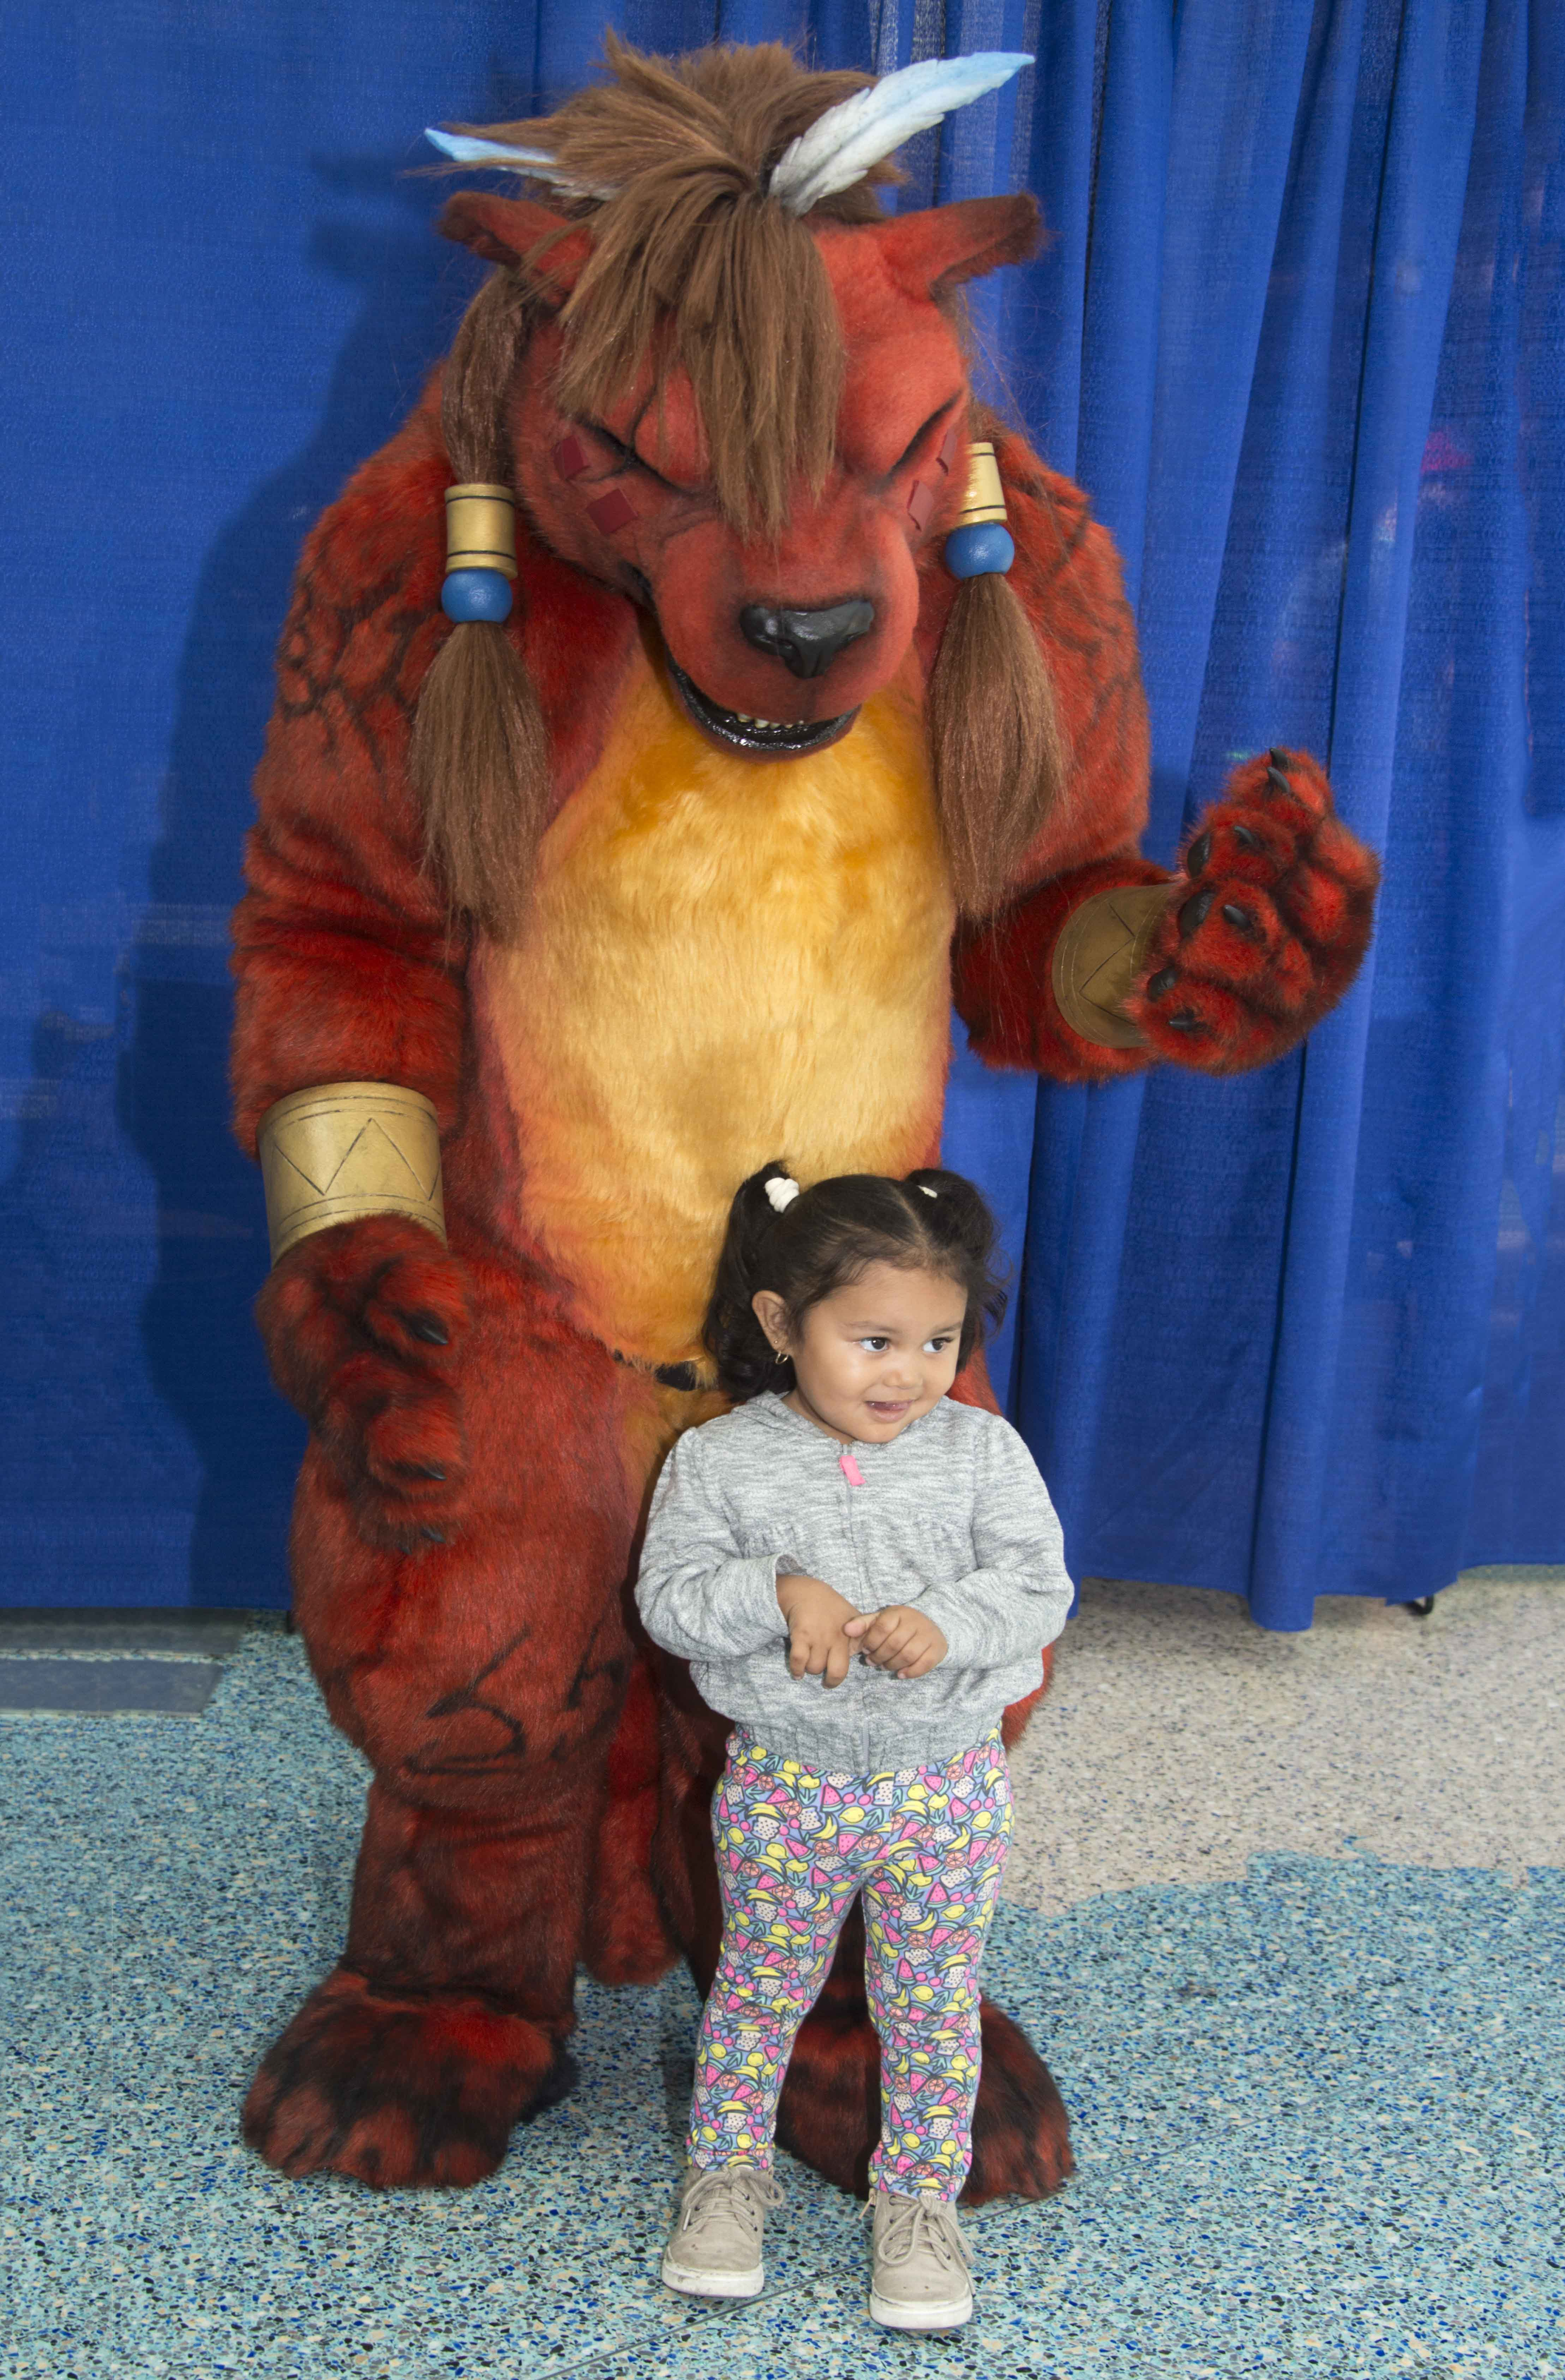 Red XIII, a character from Final Fantasy VII, poses for a photo with a child at WonderCon. — Photo by Lawrence Sherwin ©